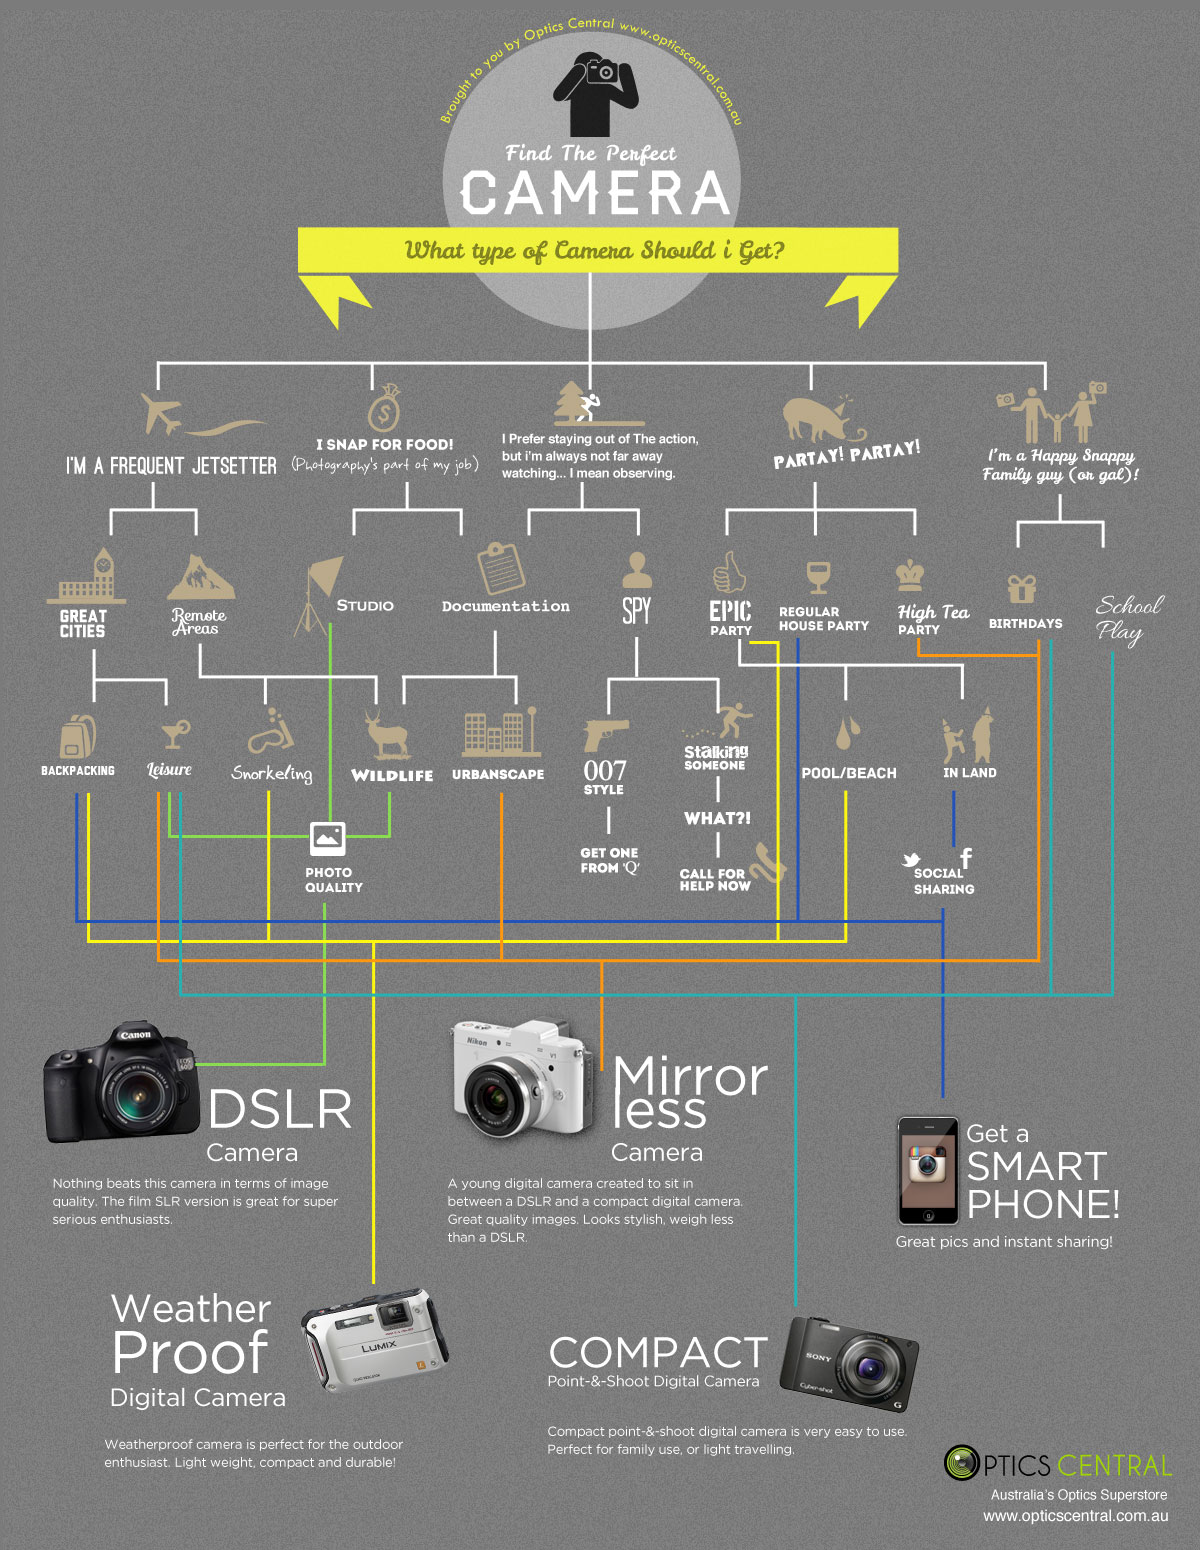 Find the Perfect Camera: What type of camera should I get?